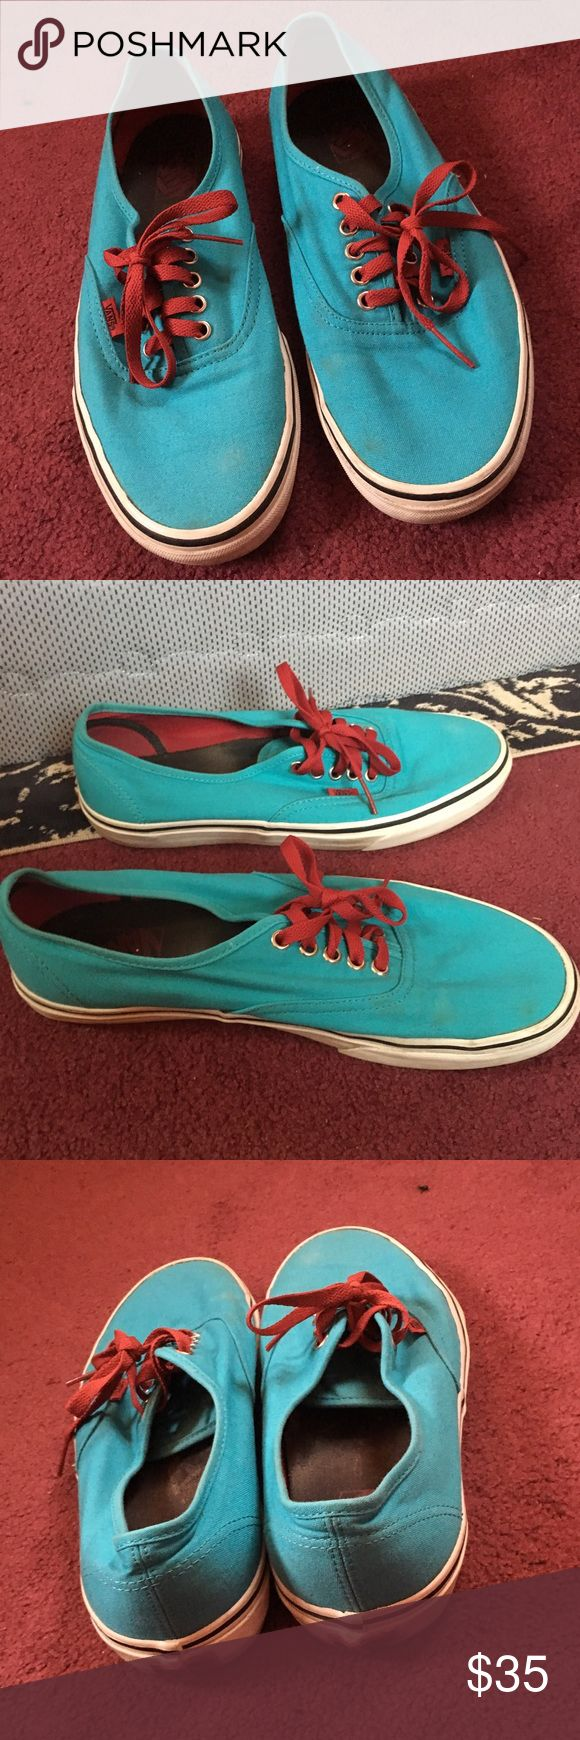 Gently worn teal blue vans Gently worn teal Vans Authentic with red laces. Lightly worn but still have a ton of life in them! Vans Shoes Sneakers